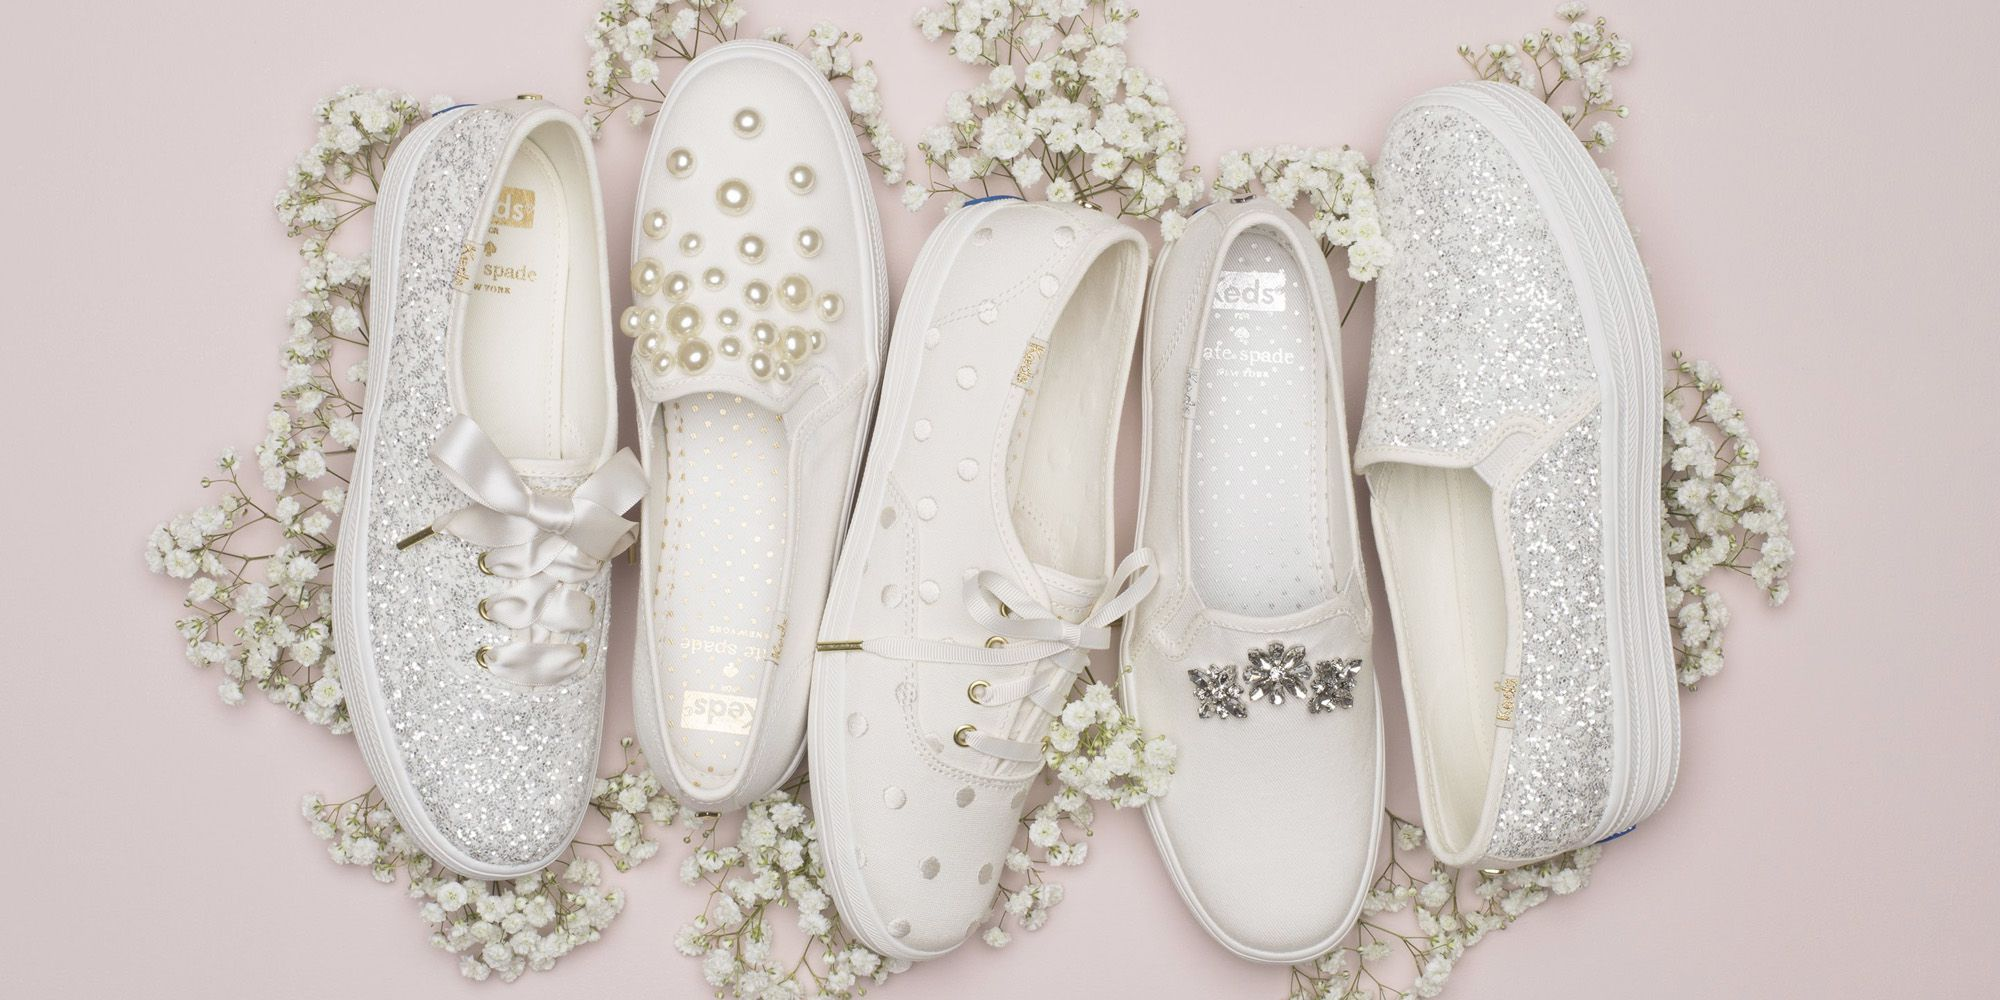 Keds and kate spade have solved your wedding day troubles junglespirit Images